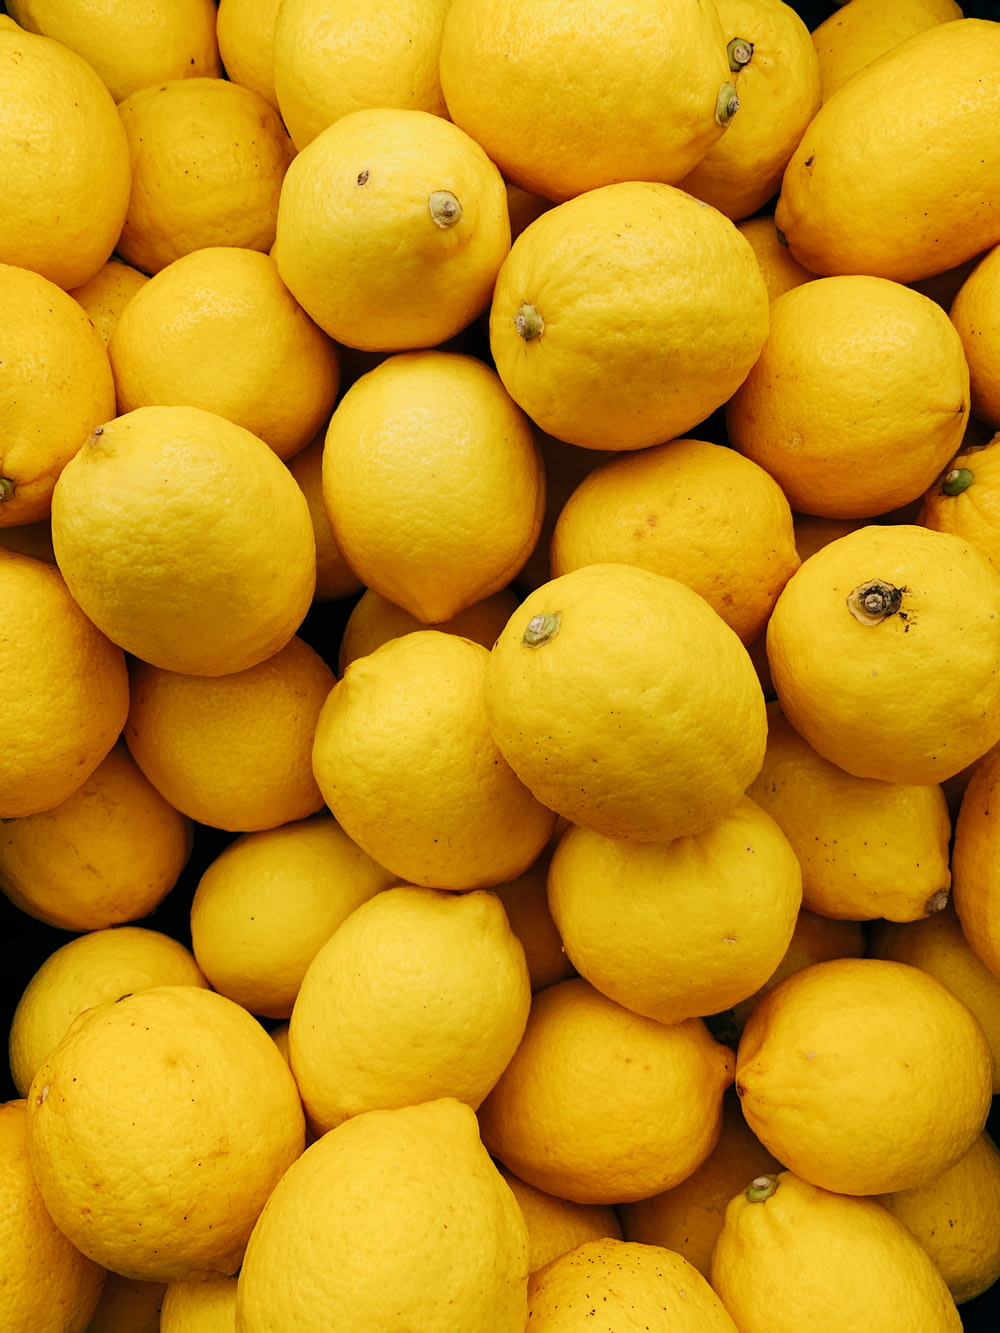 yellow citrus fruits on black surface